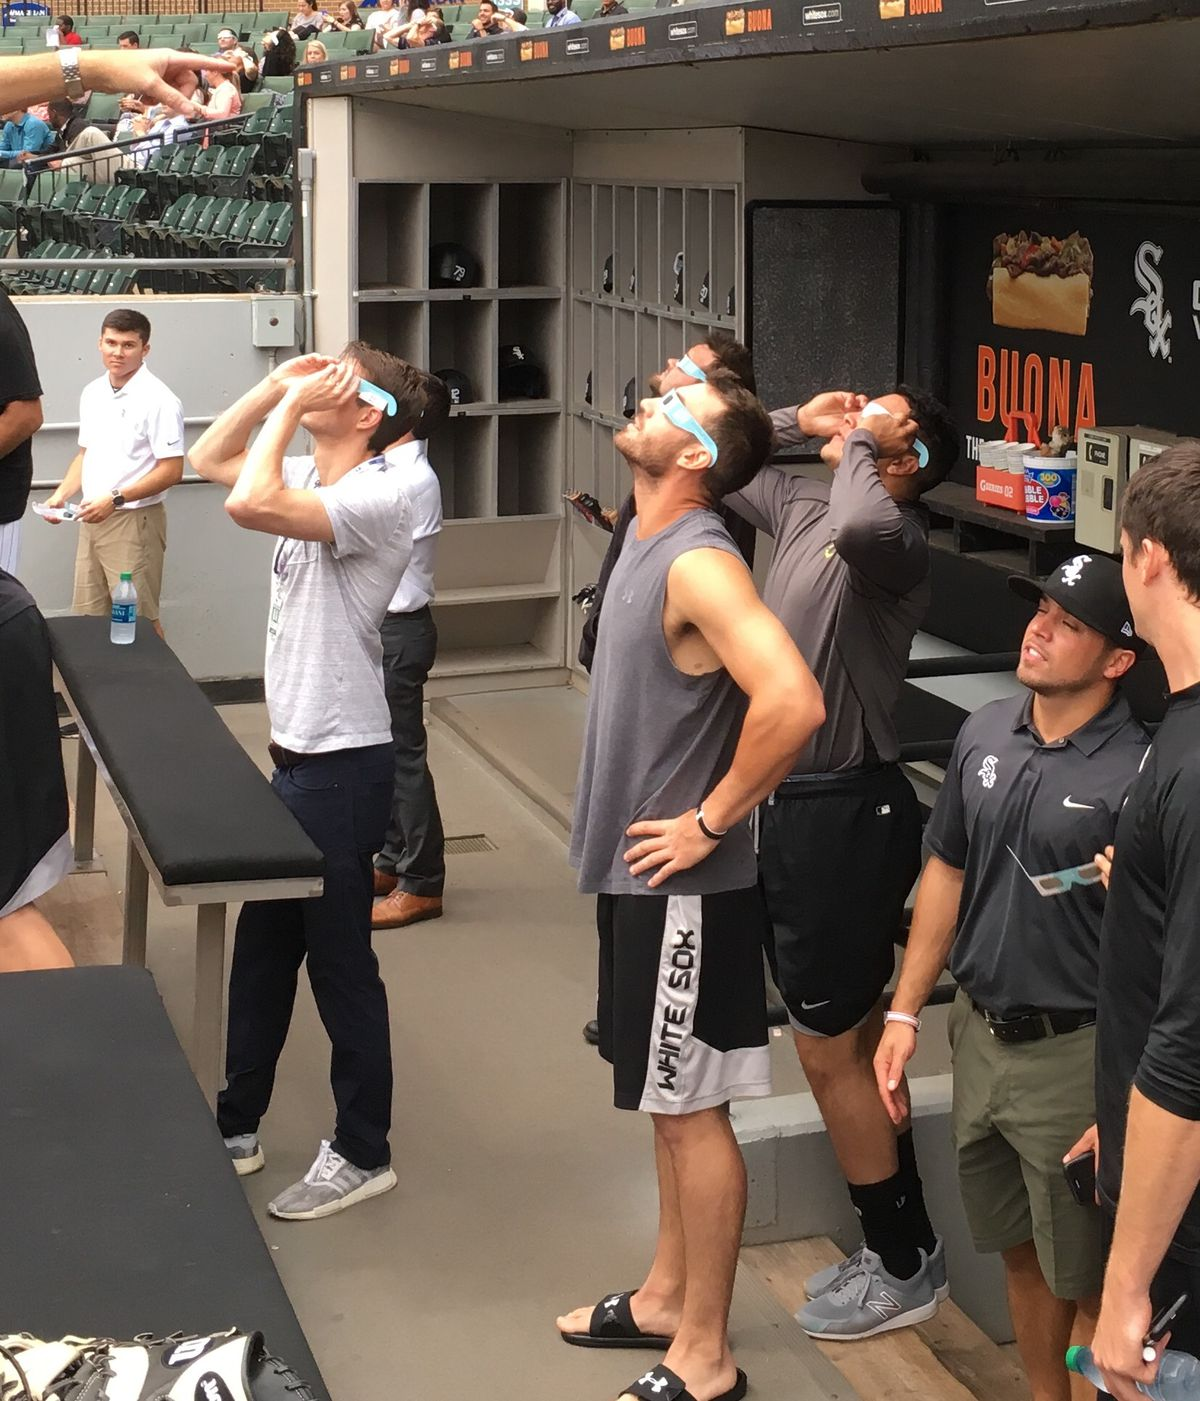 White Sox players, including Nicky Delmonico (middle) and Avisail Garcia, watch the eclipse from the dugout before Monday's games. (Photo by Daryl Van Schouwen)